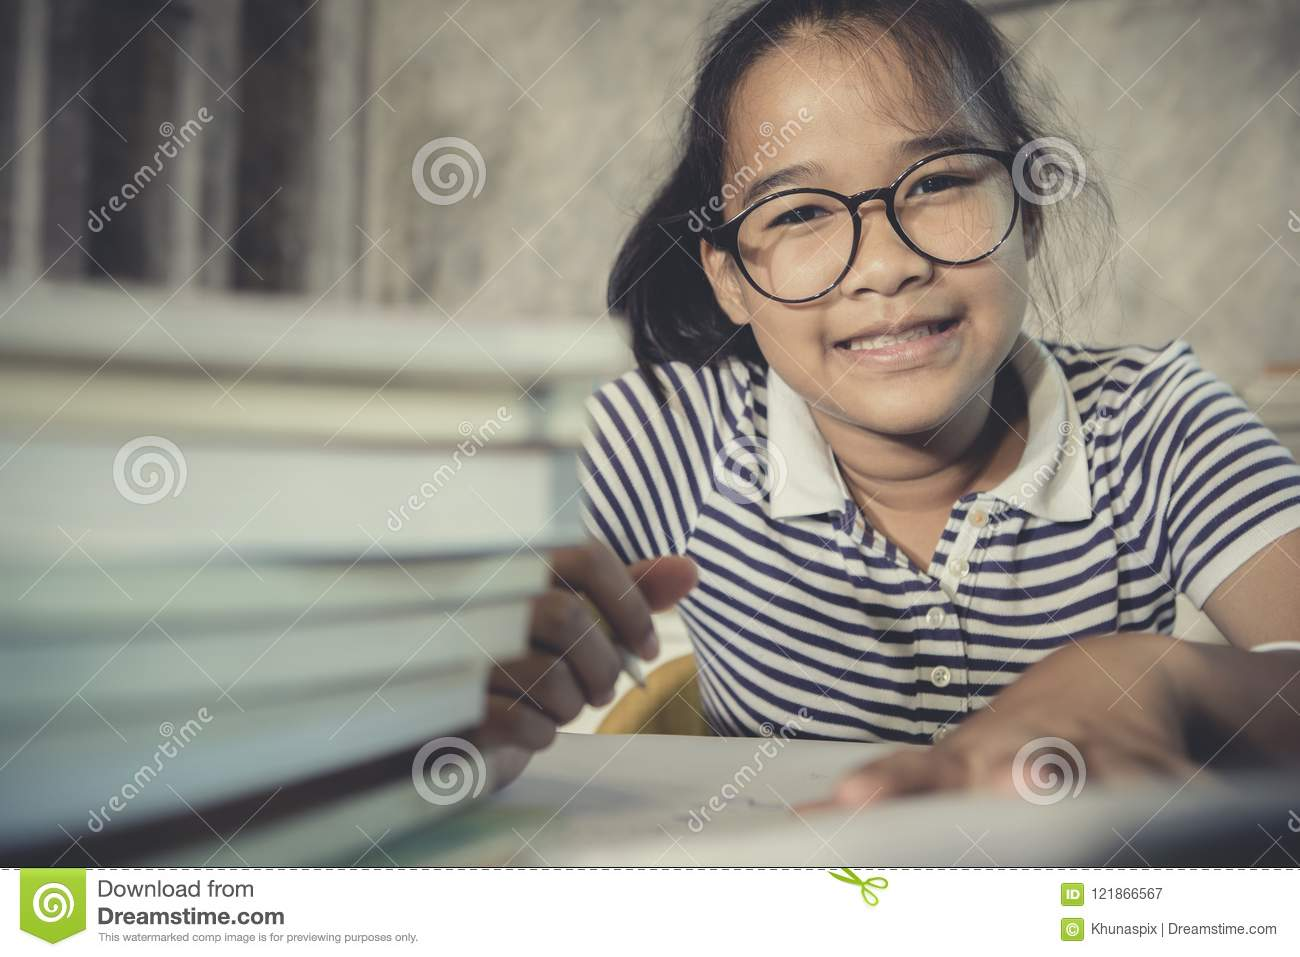 Asian teenager wearing eye glasses doing home work with stack of